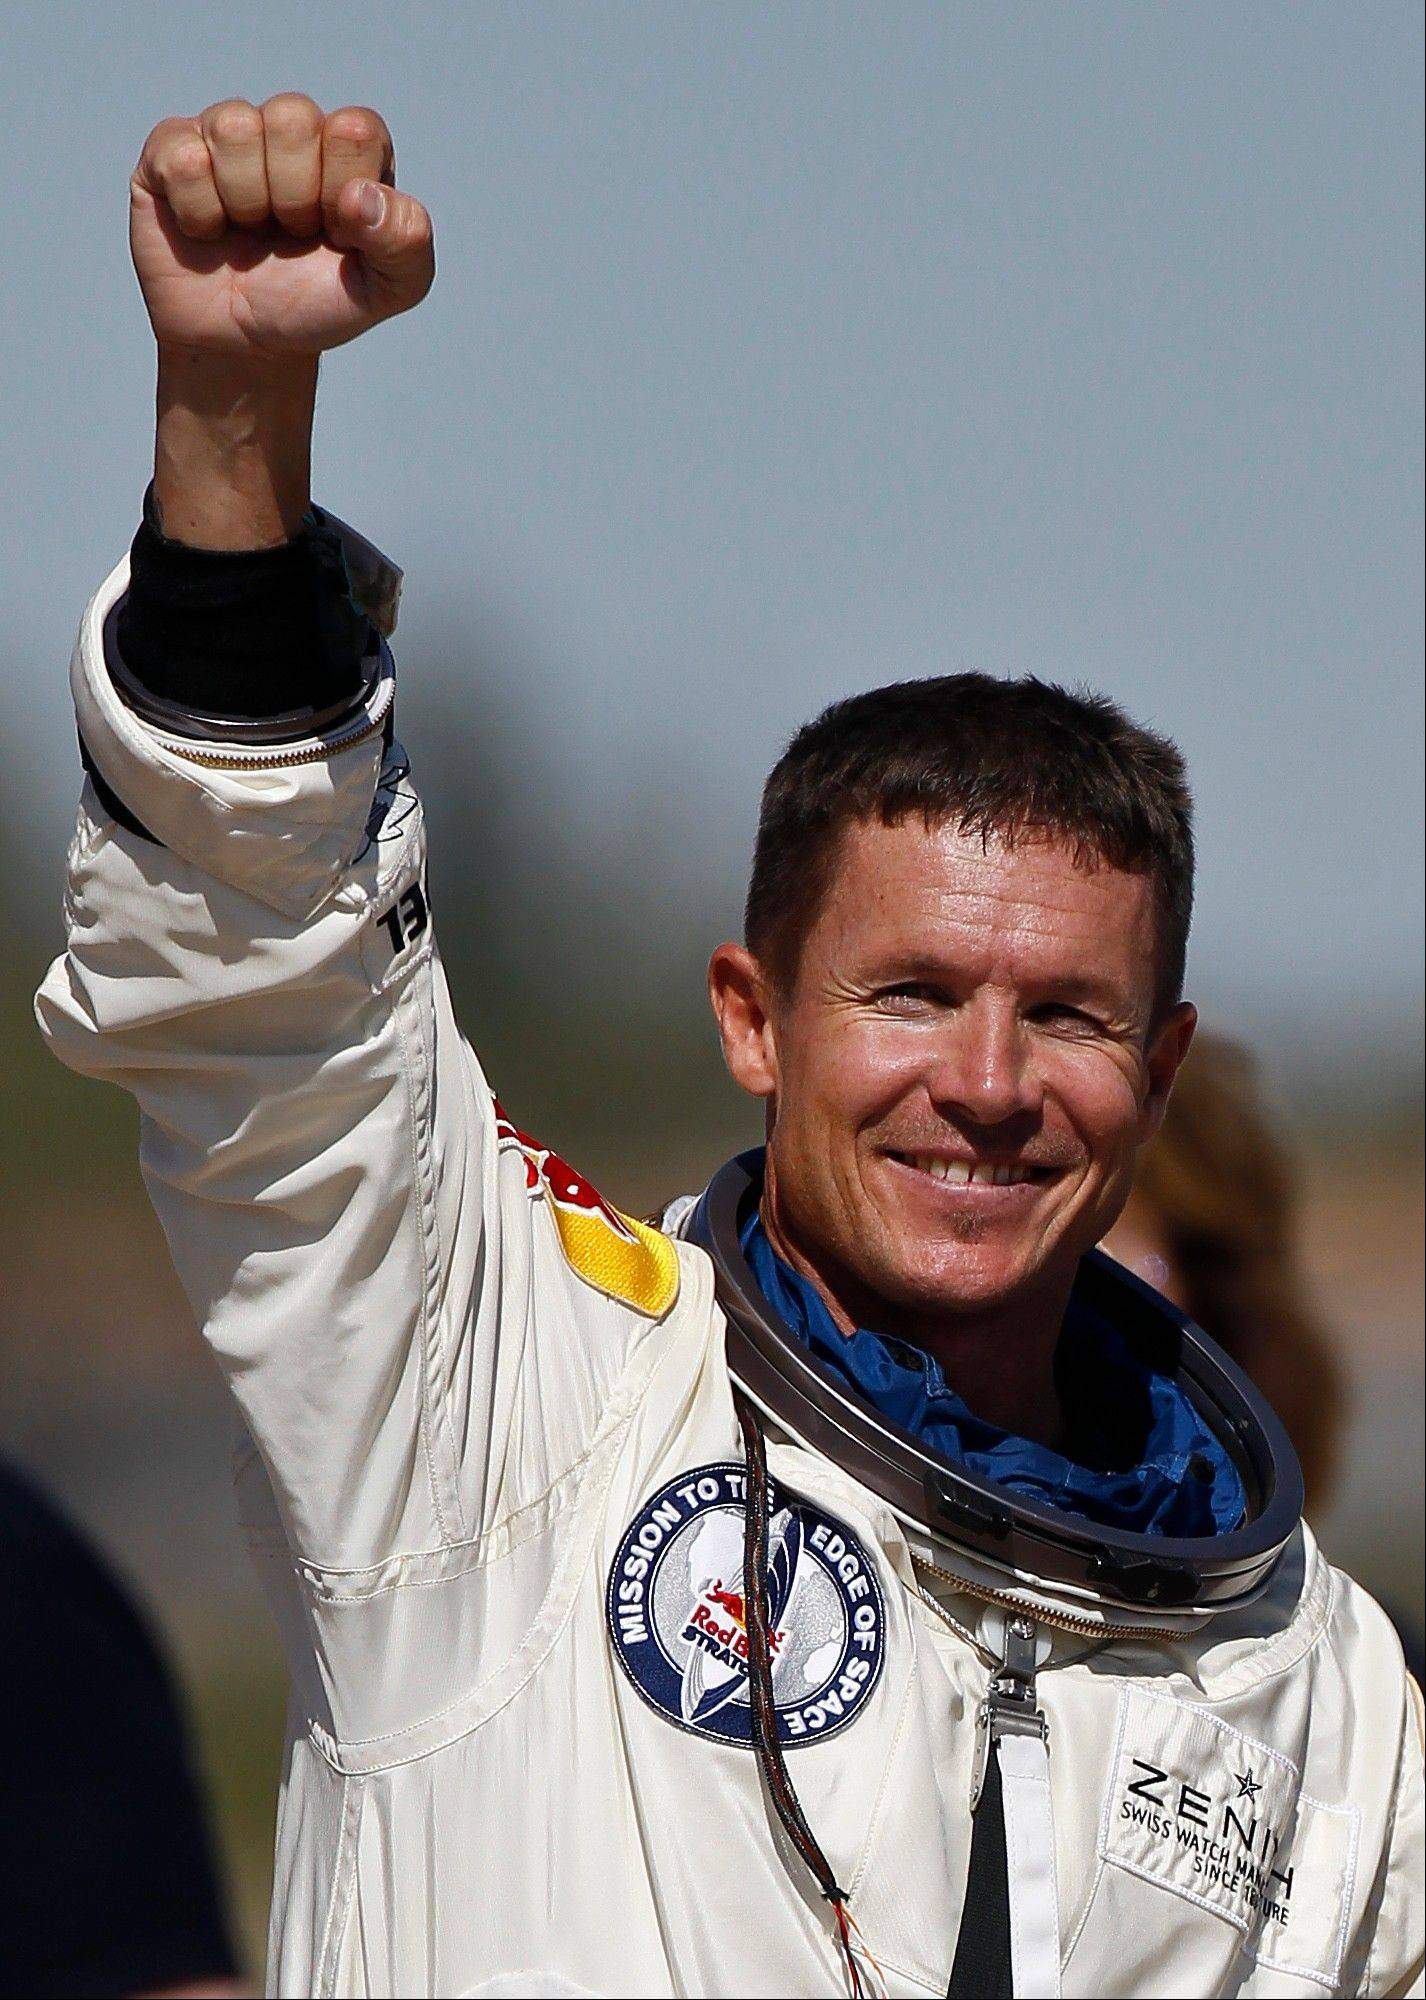 Felix Baumgartner, of Austria, pumps his fist to the crowd after successfully jumping from a space capsule lifted by a helium balloon at a height of just over 128,000 feet above the Earth�s surface Sunday in Roswell, N.M. Baumgartner came down safely in the eastern New Mexico desert minutes about nine minutes after jumping from his capsule 128,097 feet, or roughly 24 miles, above Earth.